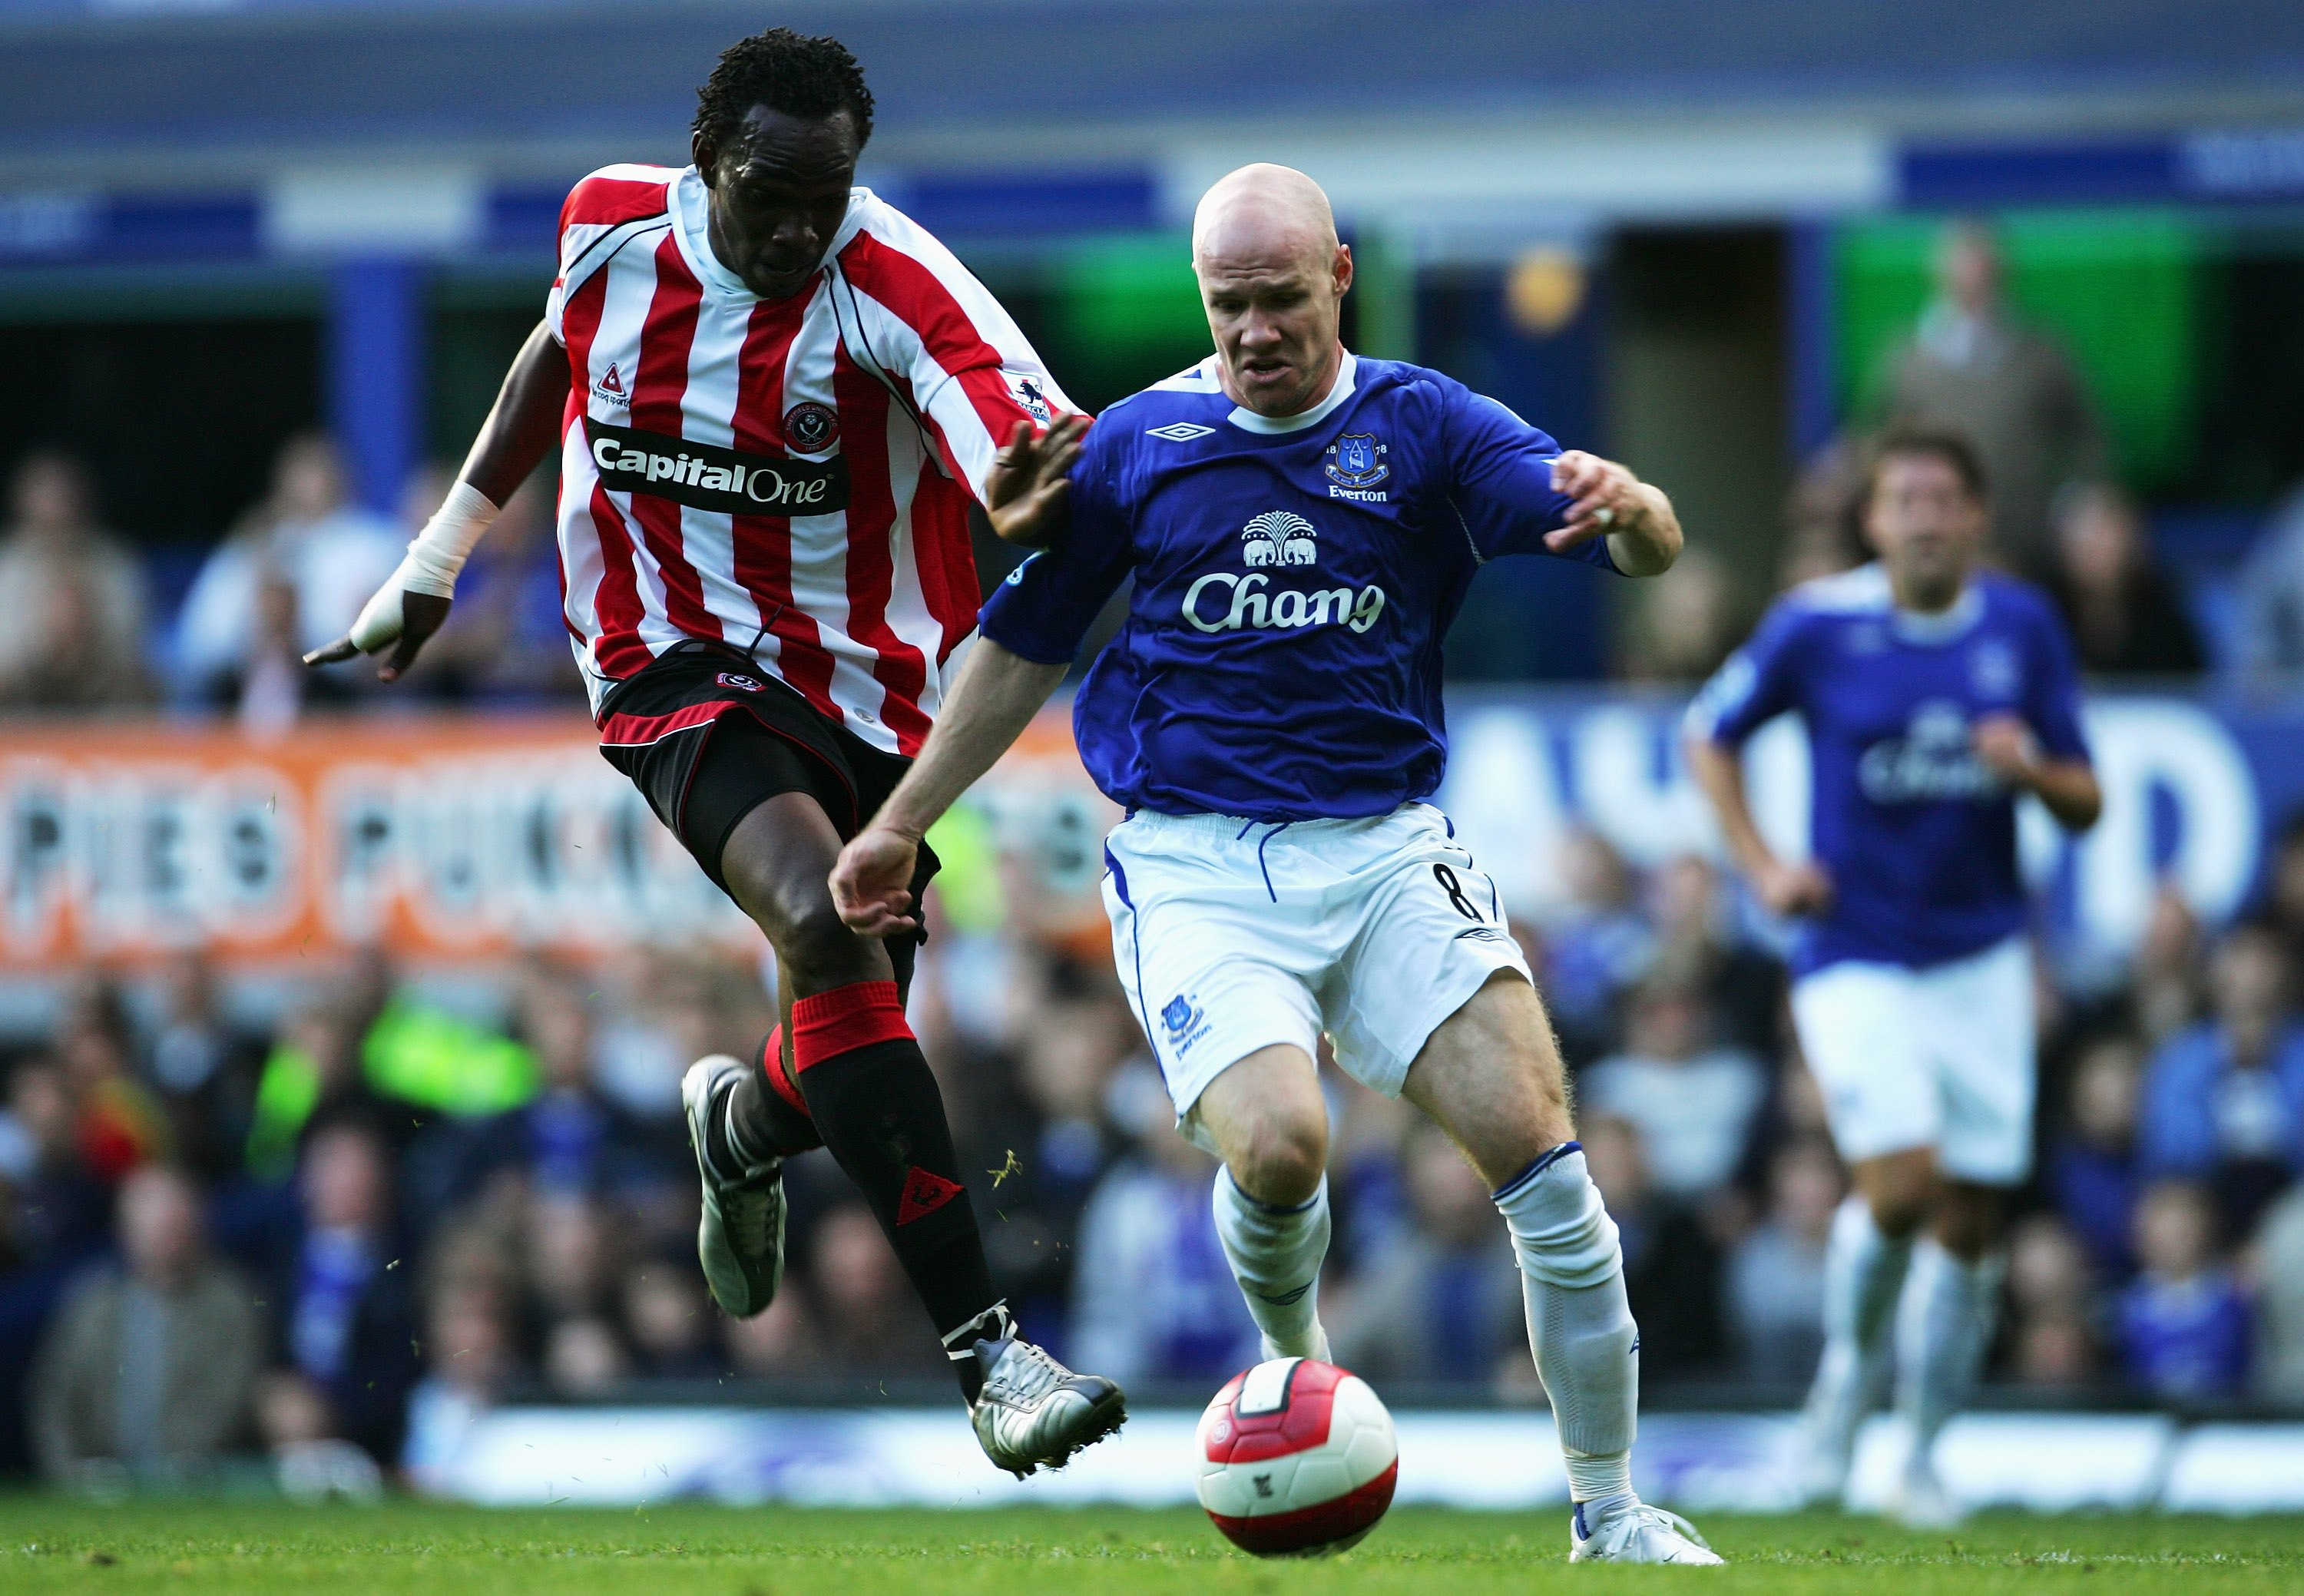 Everton vs Sheffield United: The Opposition View